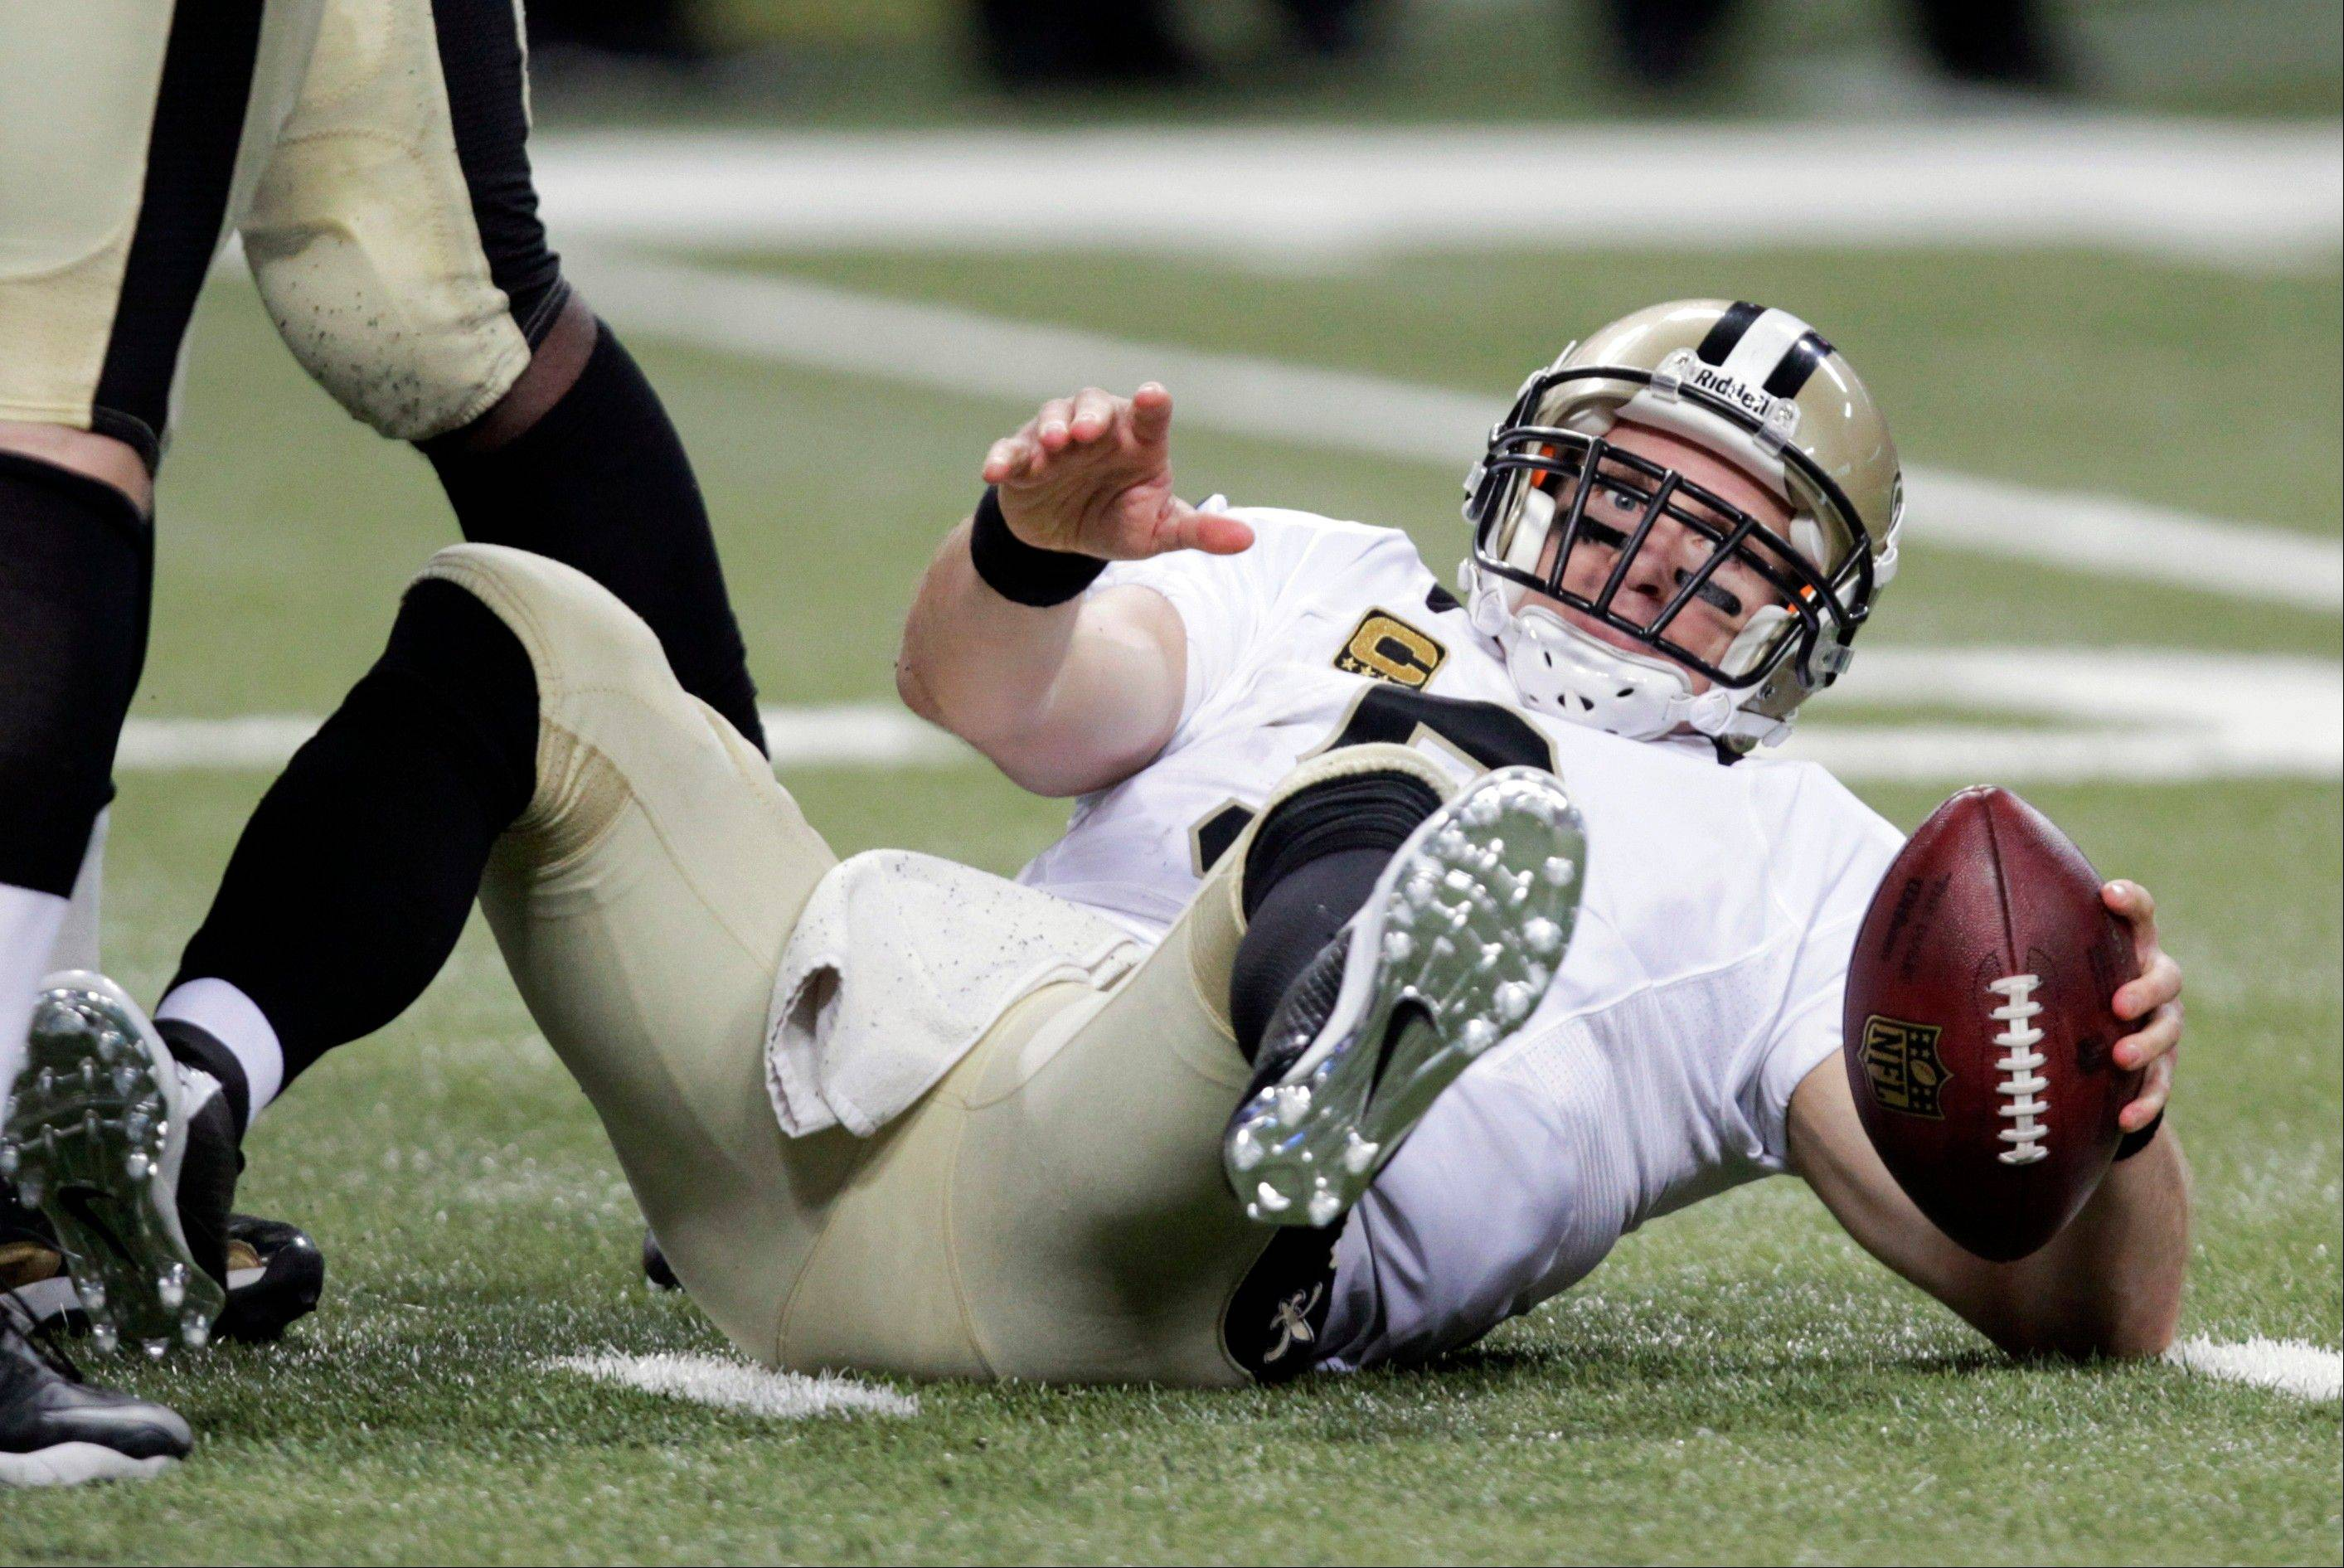 New Orleans Saints quarterback Drew Brees gets up slowly after being sacked for a 6-yard loss by St. Louis Rams defensive end William Hayes during the fourth quarter of an NFL football game Sunday, Dec. 15, 2013, in St. Louis. The Rams won 27-16.